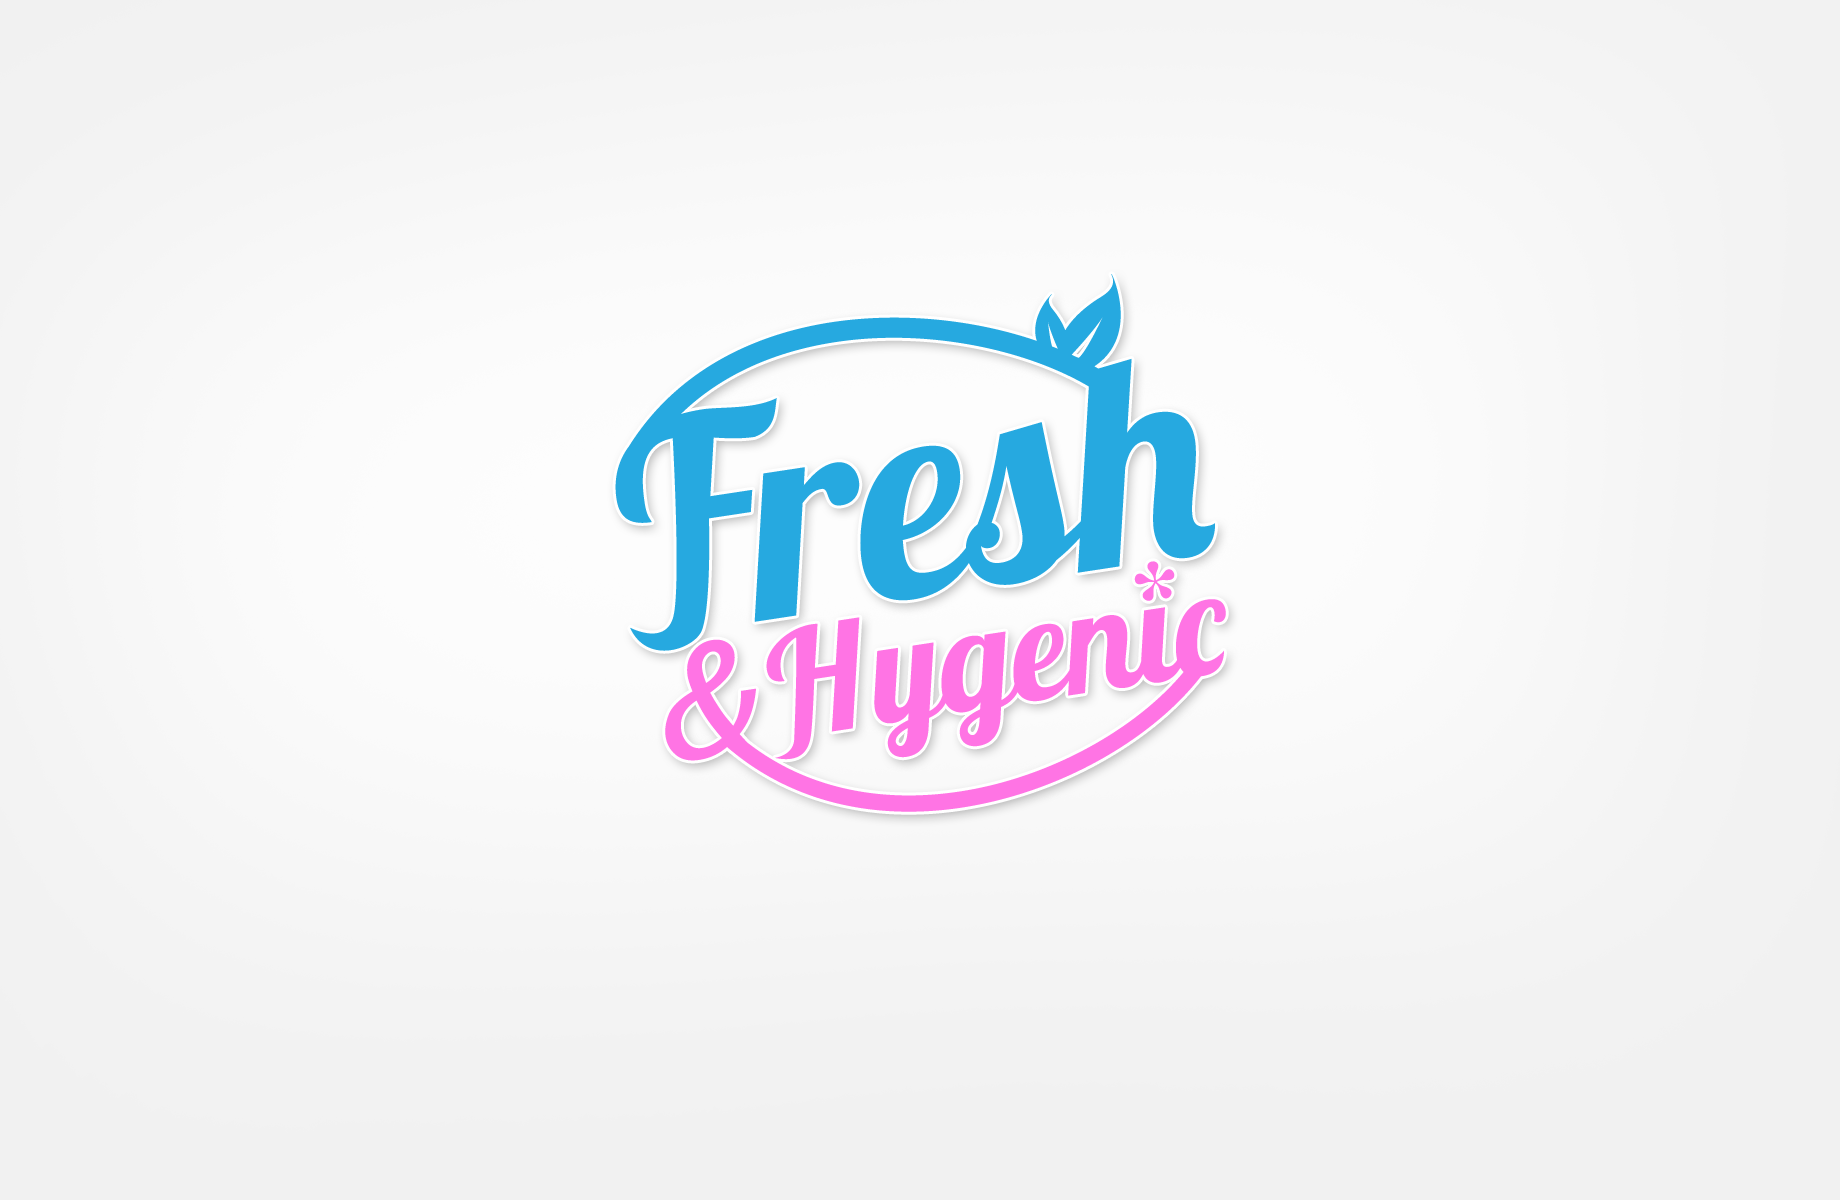 Logo Design by Jan Chua - Entry No. 55 in the Logo Design Contest Fun Logo Design for Fresh & Hygenic.